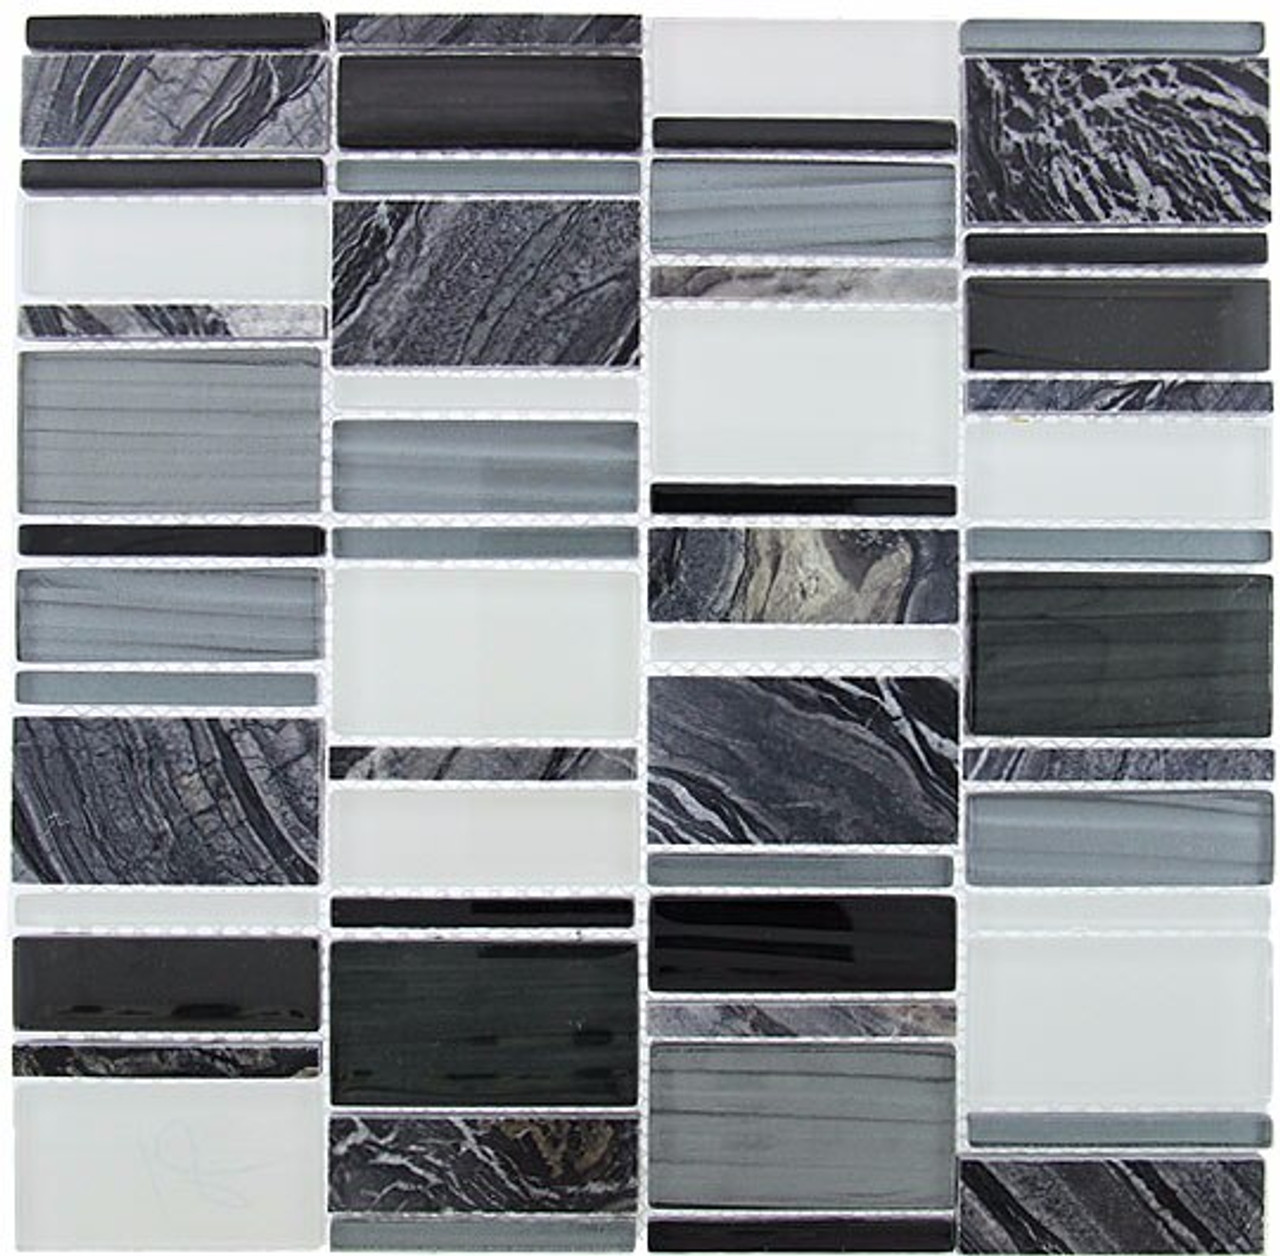 Bella Glass Tiles Corrugated Scapes Series Pepper Stalk CSS-127